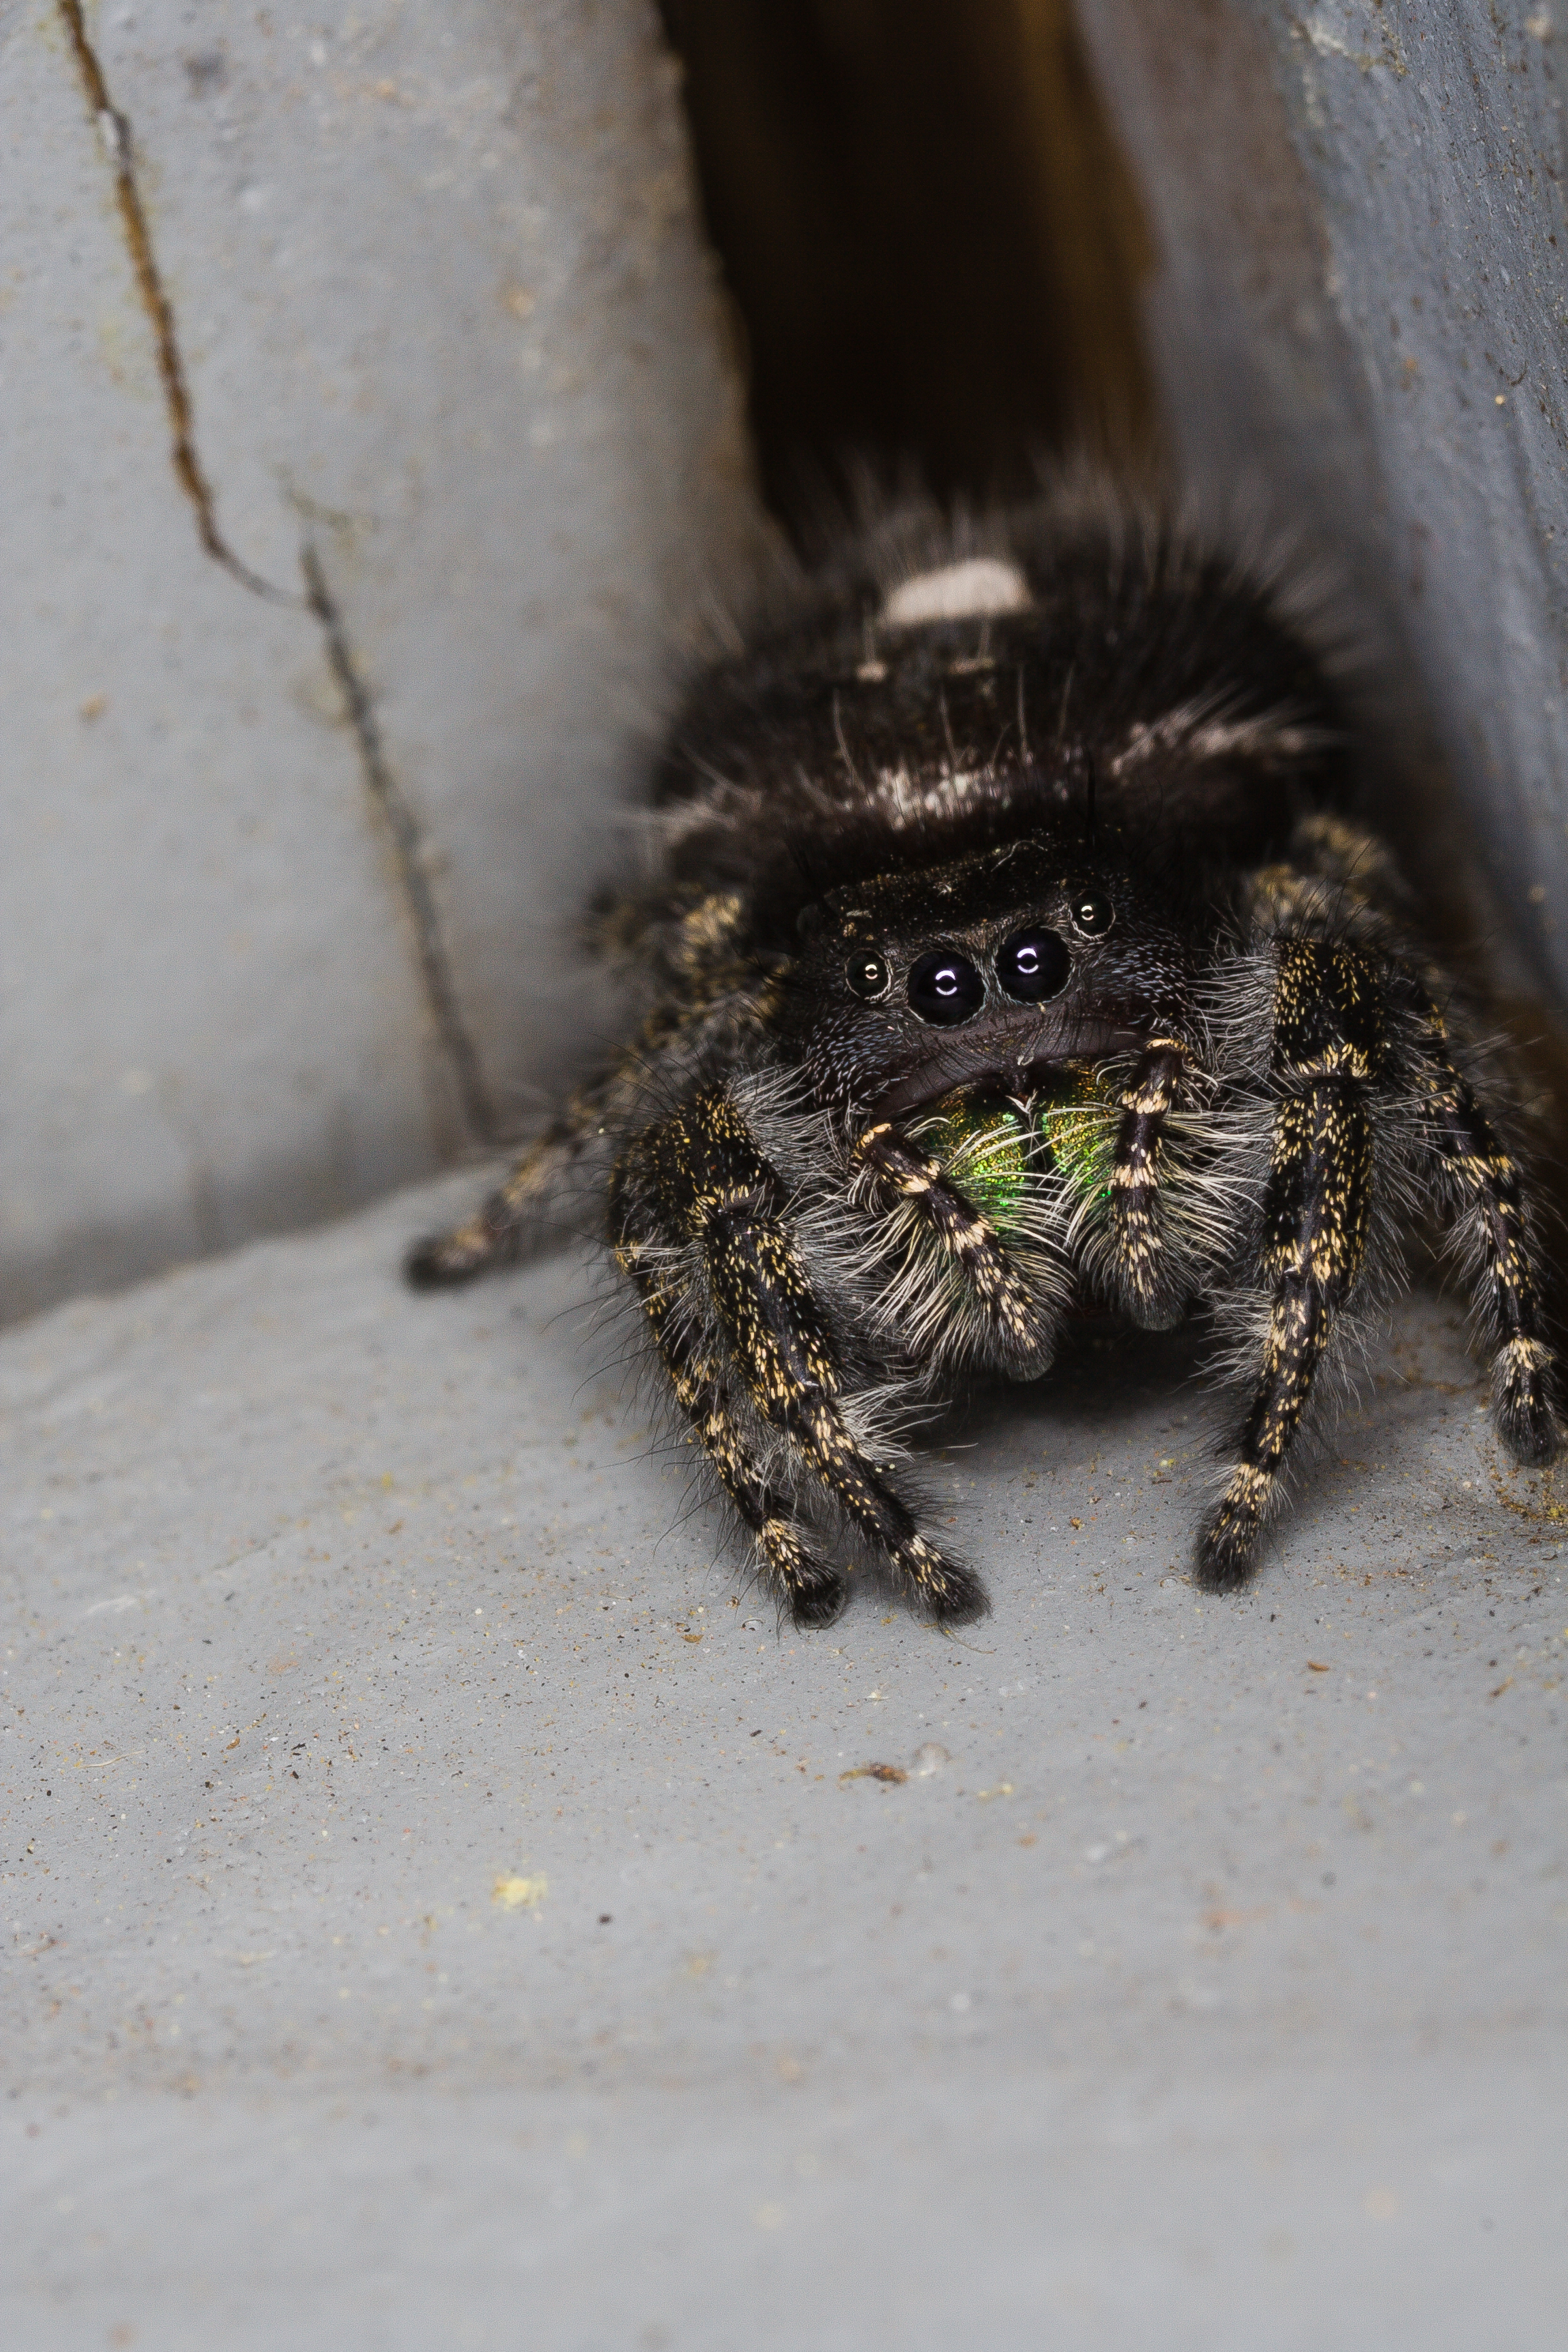 Bold Jumping Spider - Species: Phidippus audax